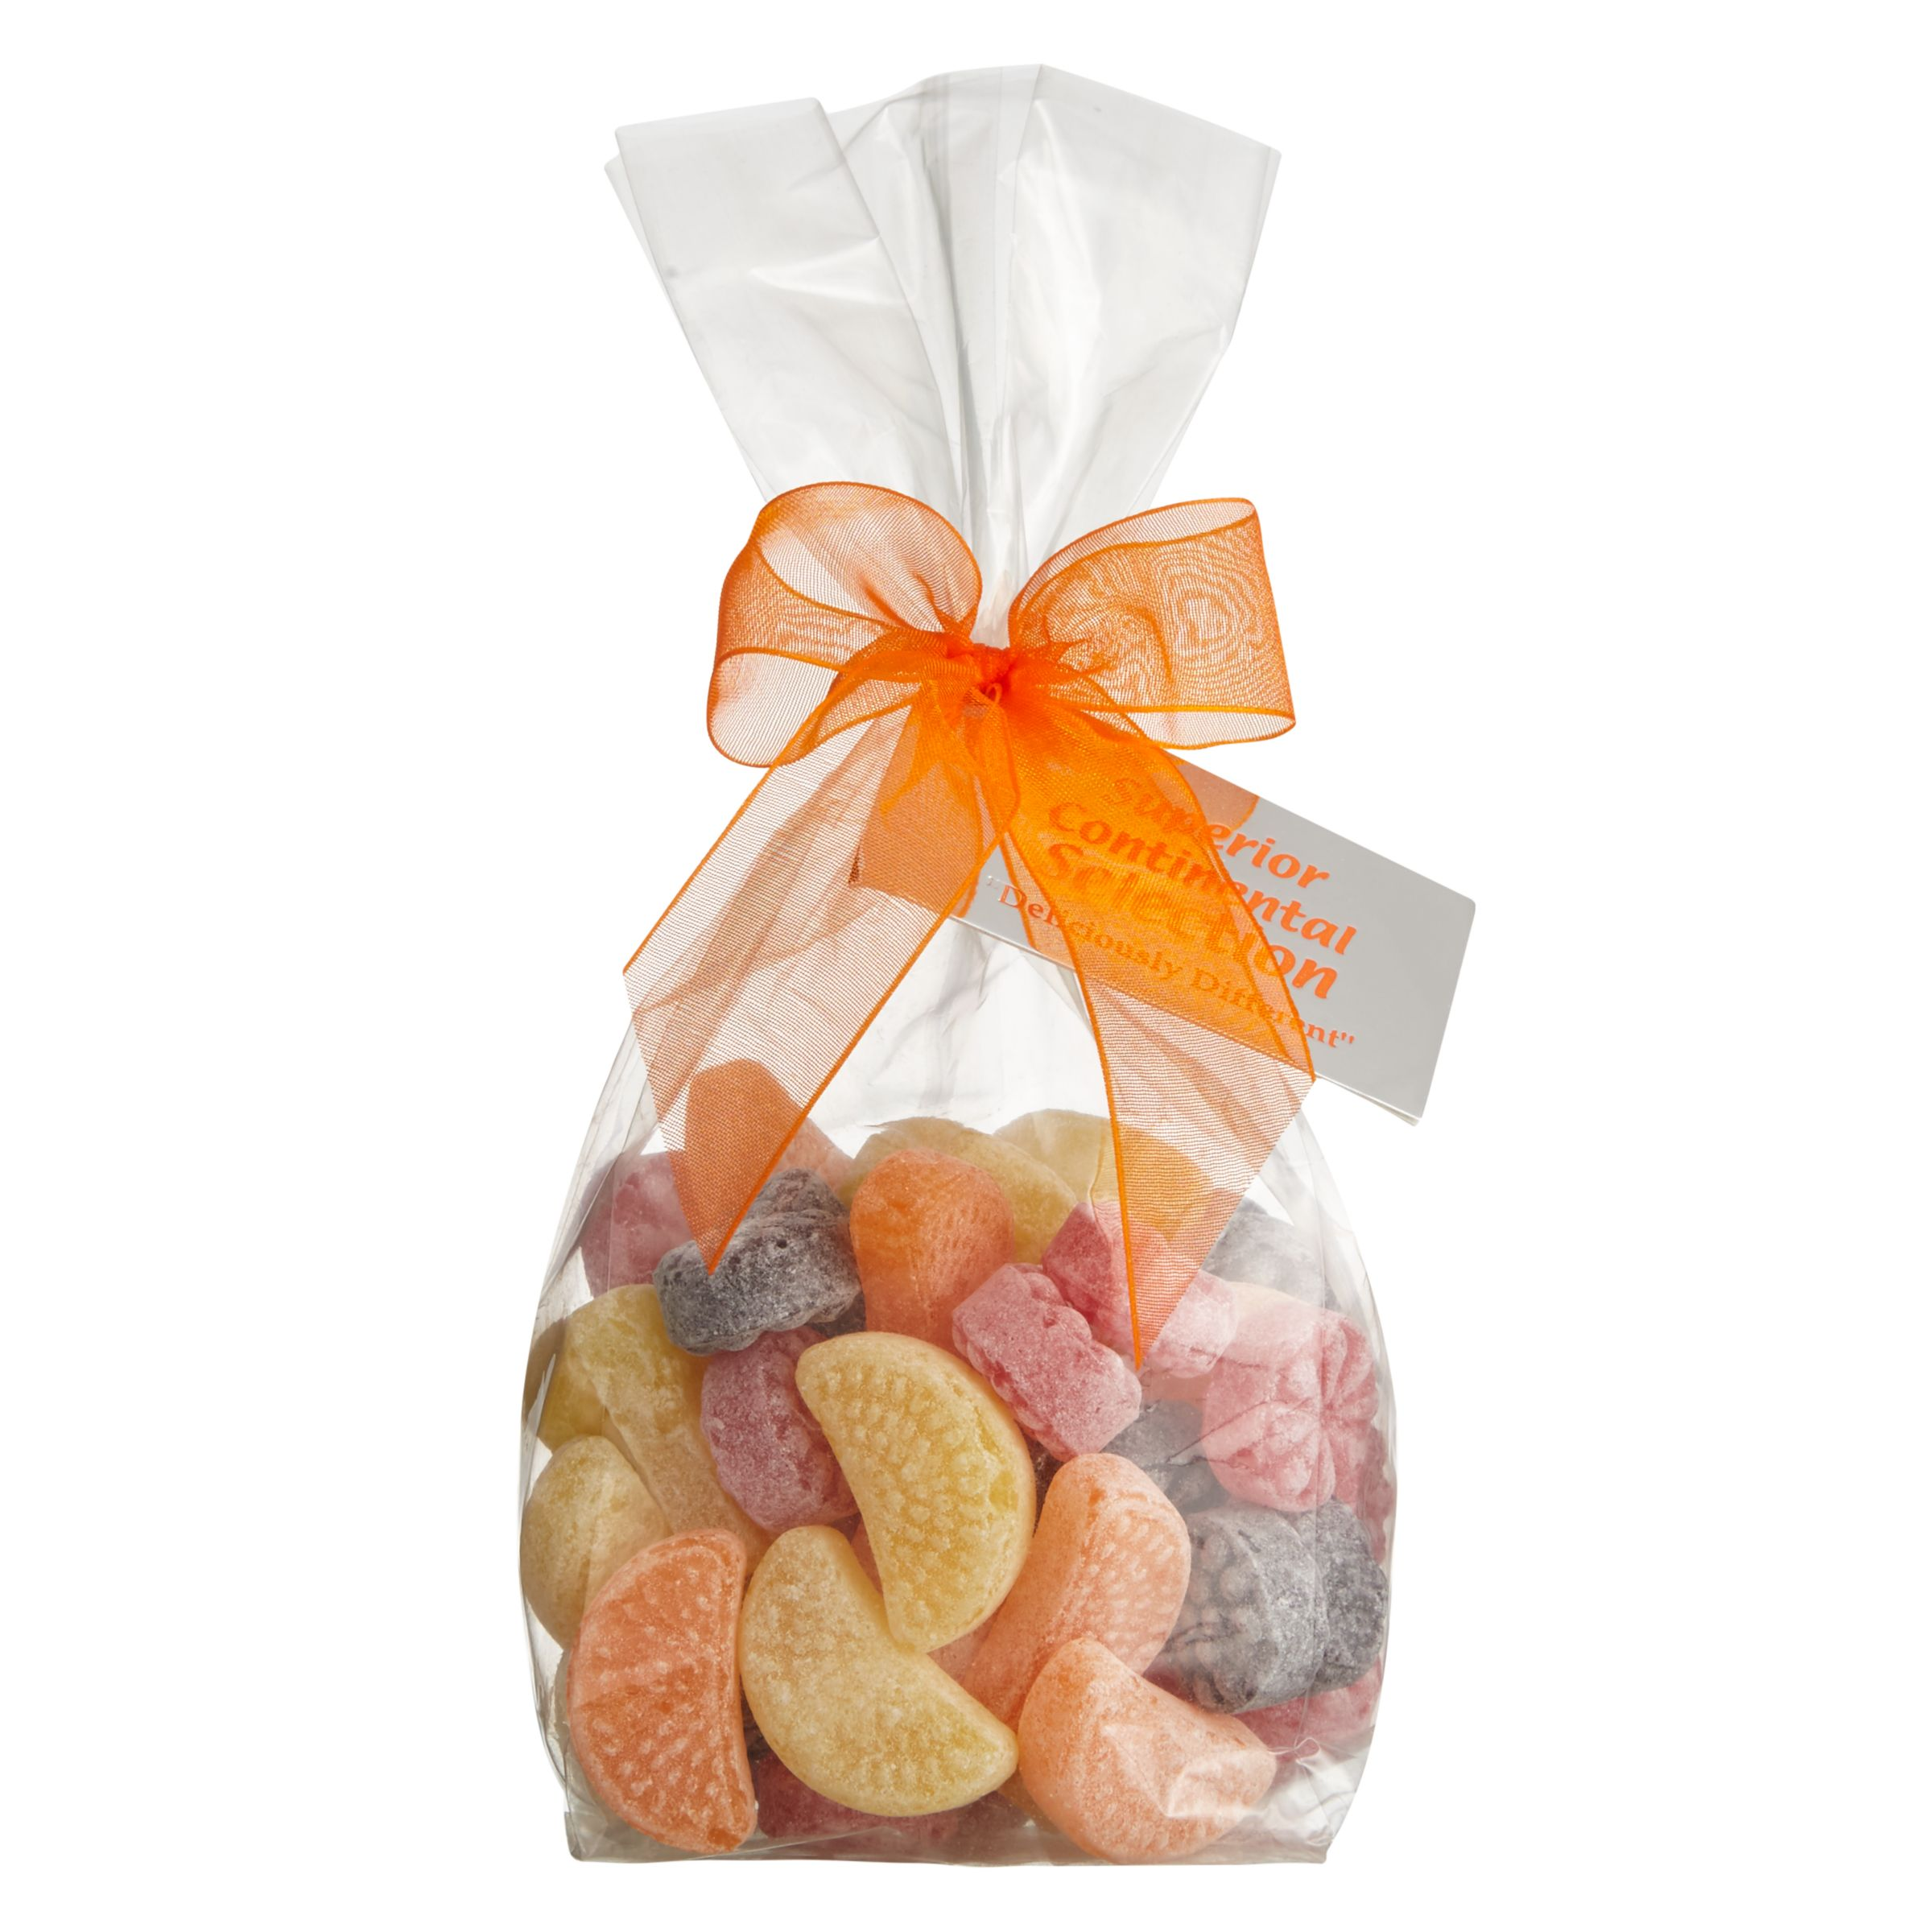 Ambassadors of London Ambassadors of London Assorted Fruit Sweets, 250g